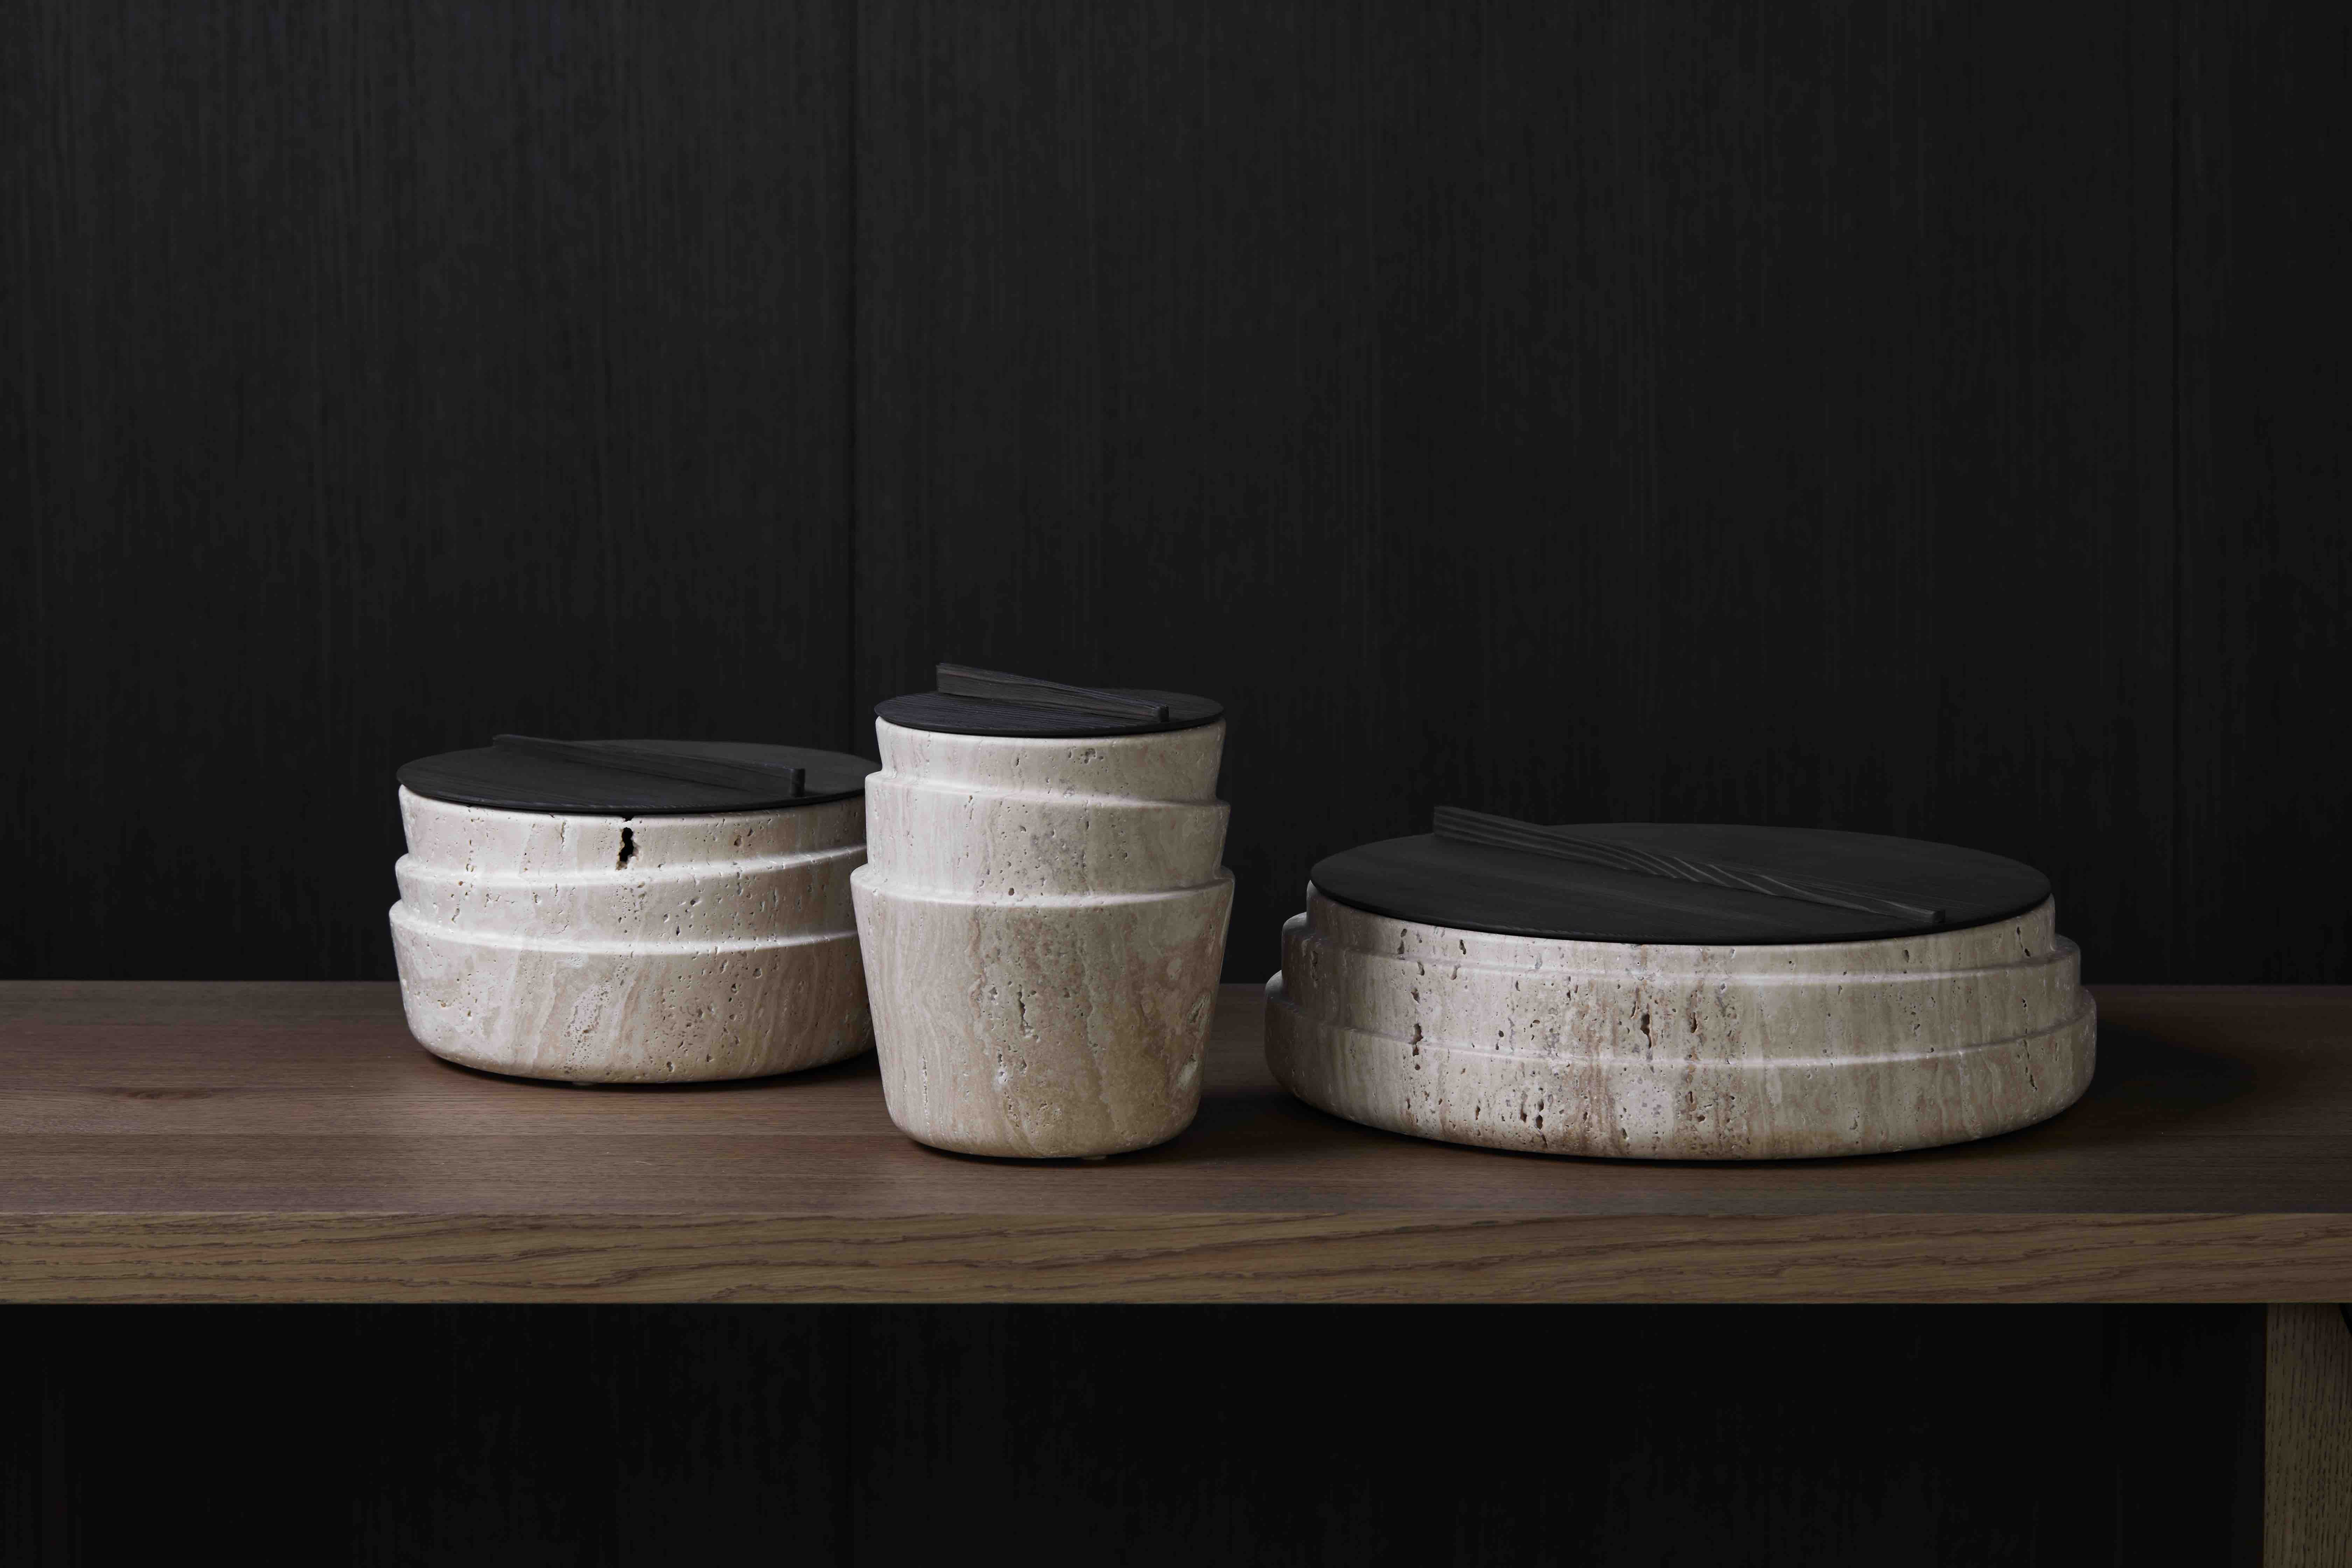 STCKD-CONTAINERS_TRAVERTINE-SPRUCE-DESIGN_DAN_YEFFET_COLLECTION_PARTICULIERE